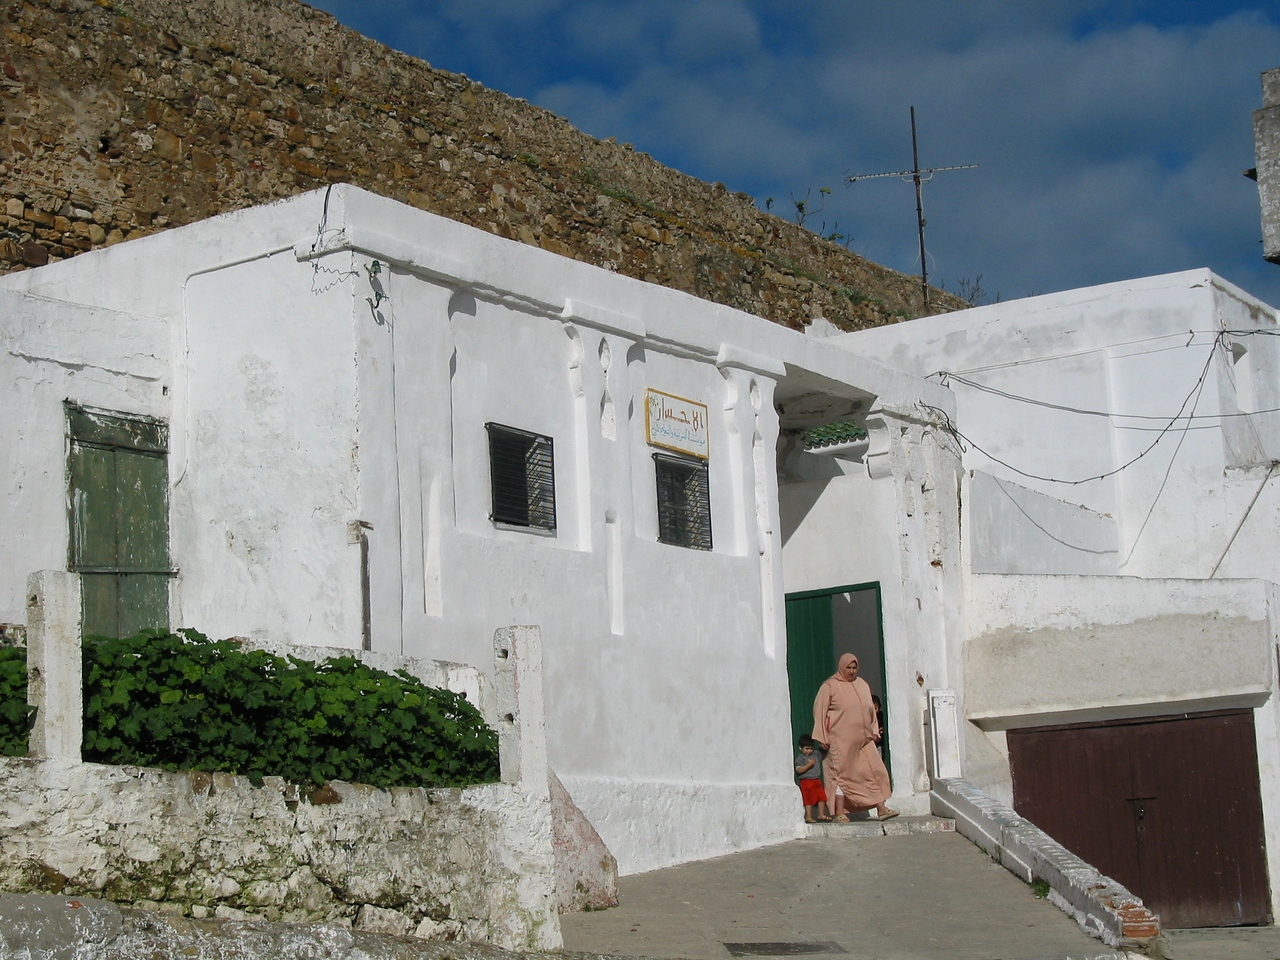 The United States dedicated its first consulate in Tangier during the George Washington administration.] In 1821, the Legation Building in Tangier became the first piece of property acquired abroad by the U.S. government—a gift to the U.S. from Sultan Moulay Suliman.